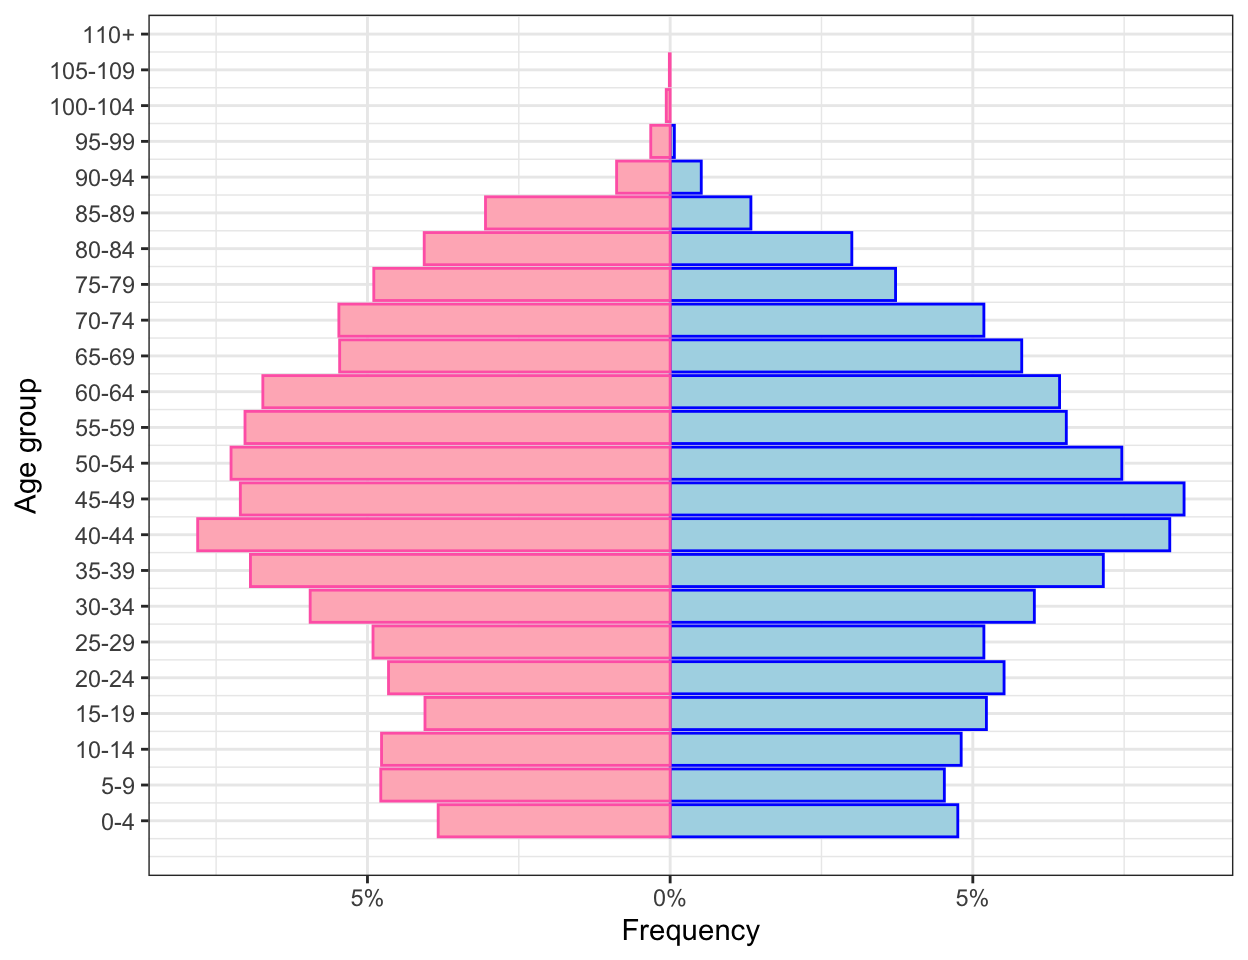 Age pyramid from microdata